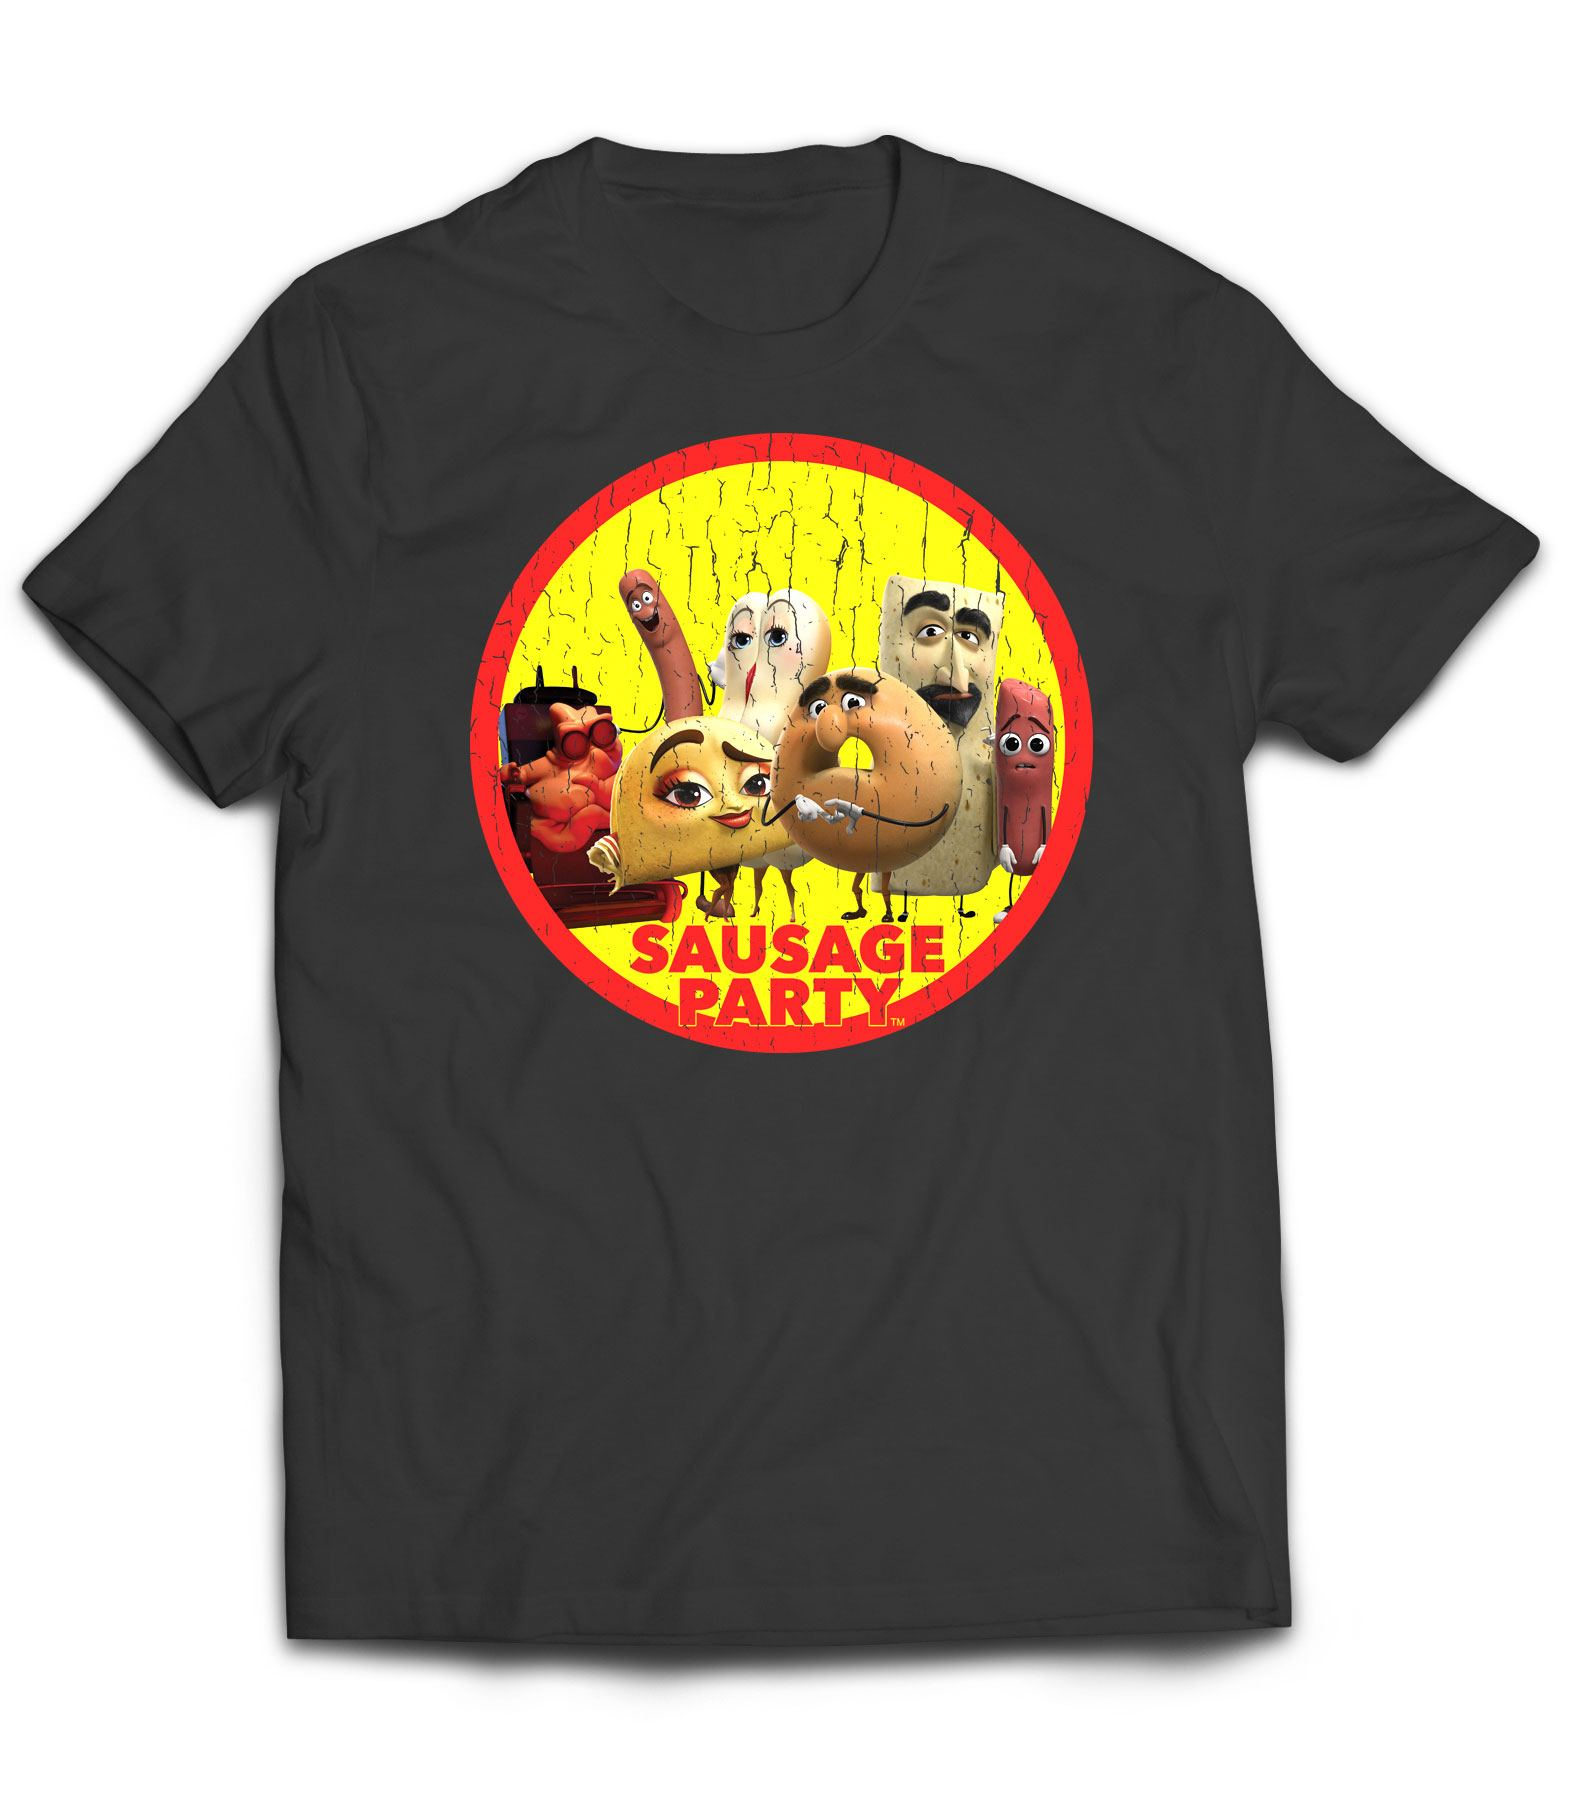 Sausage Party T-Shirt Distressed Character Badge Size M